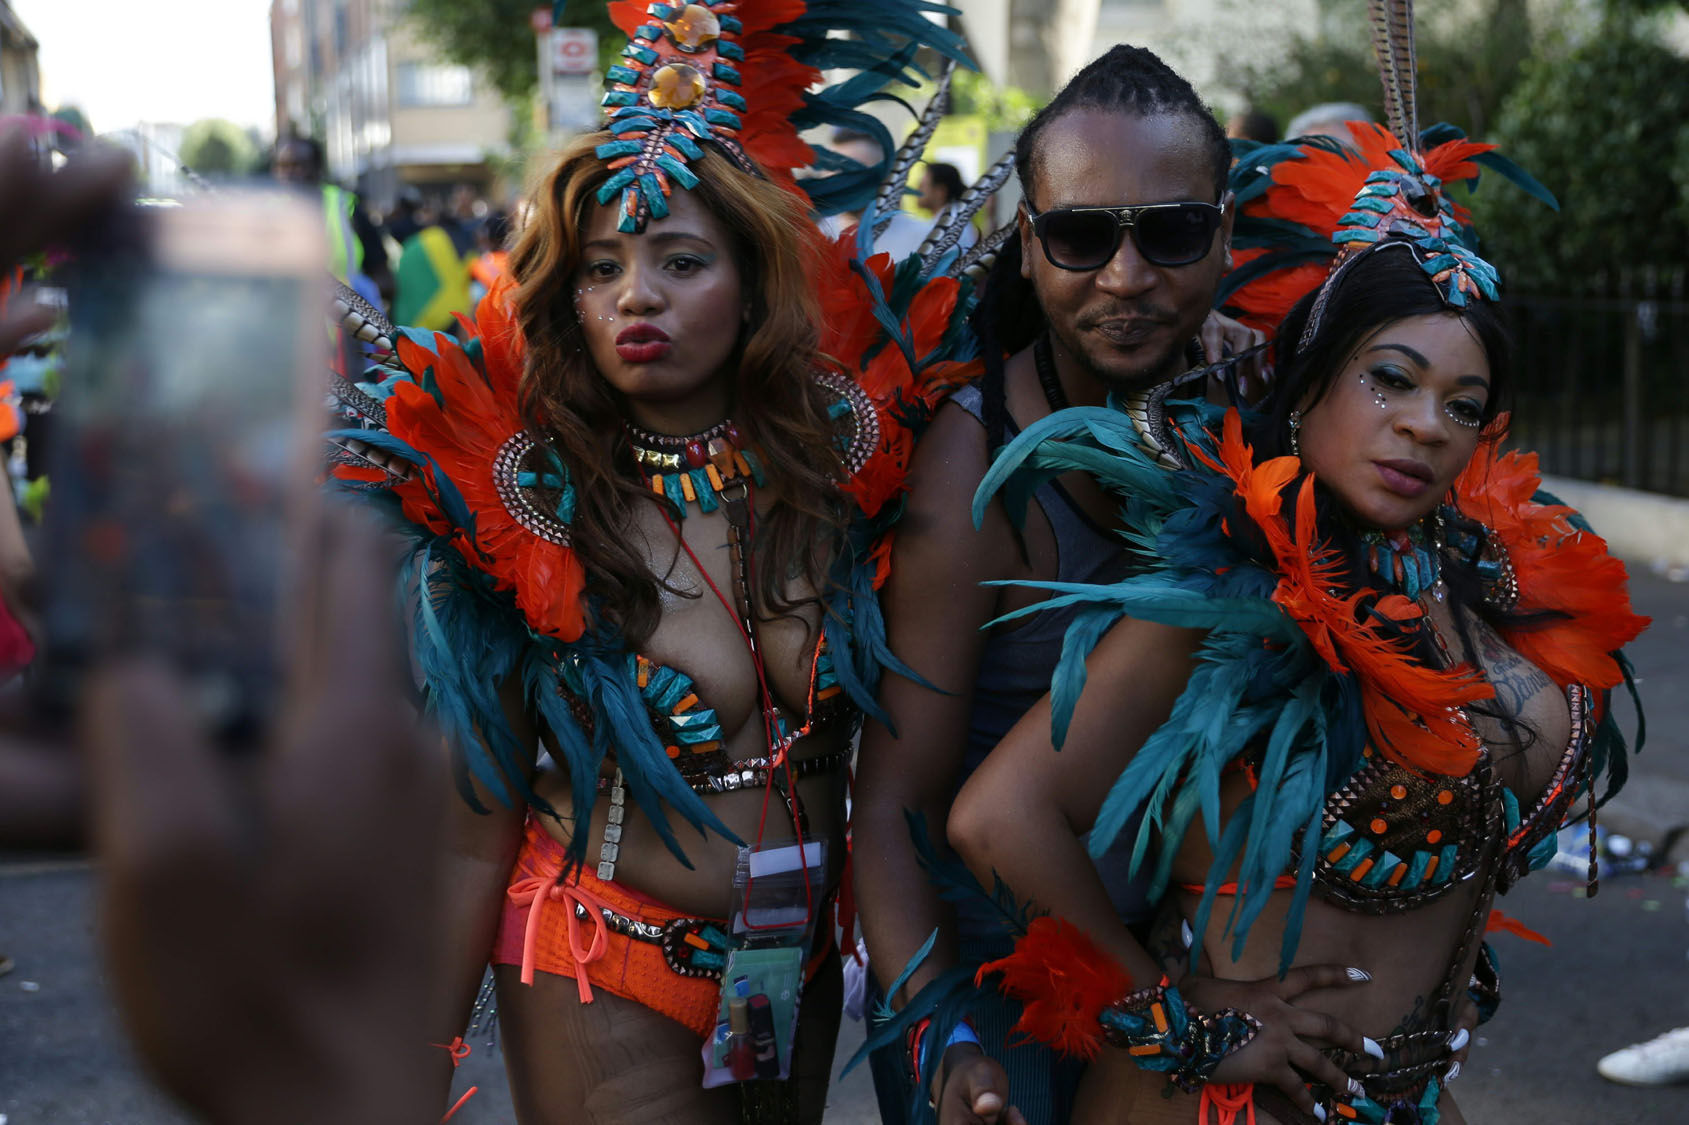 the caribbean culture The caribbean's culture has historically been influenced by european culture and traditions, especially british, spanish and french over time, elements of the cultures of the africans and other immigrant populations have become incorporated into mainstream caribbean culture.